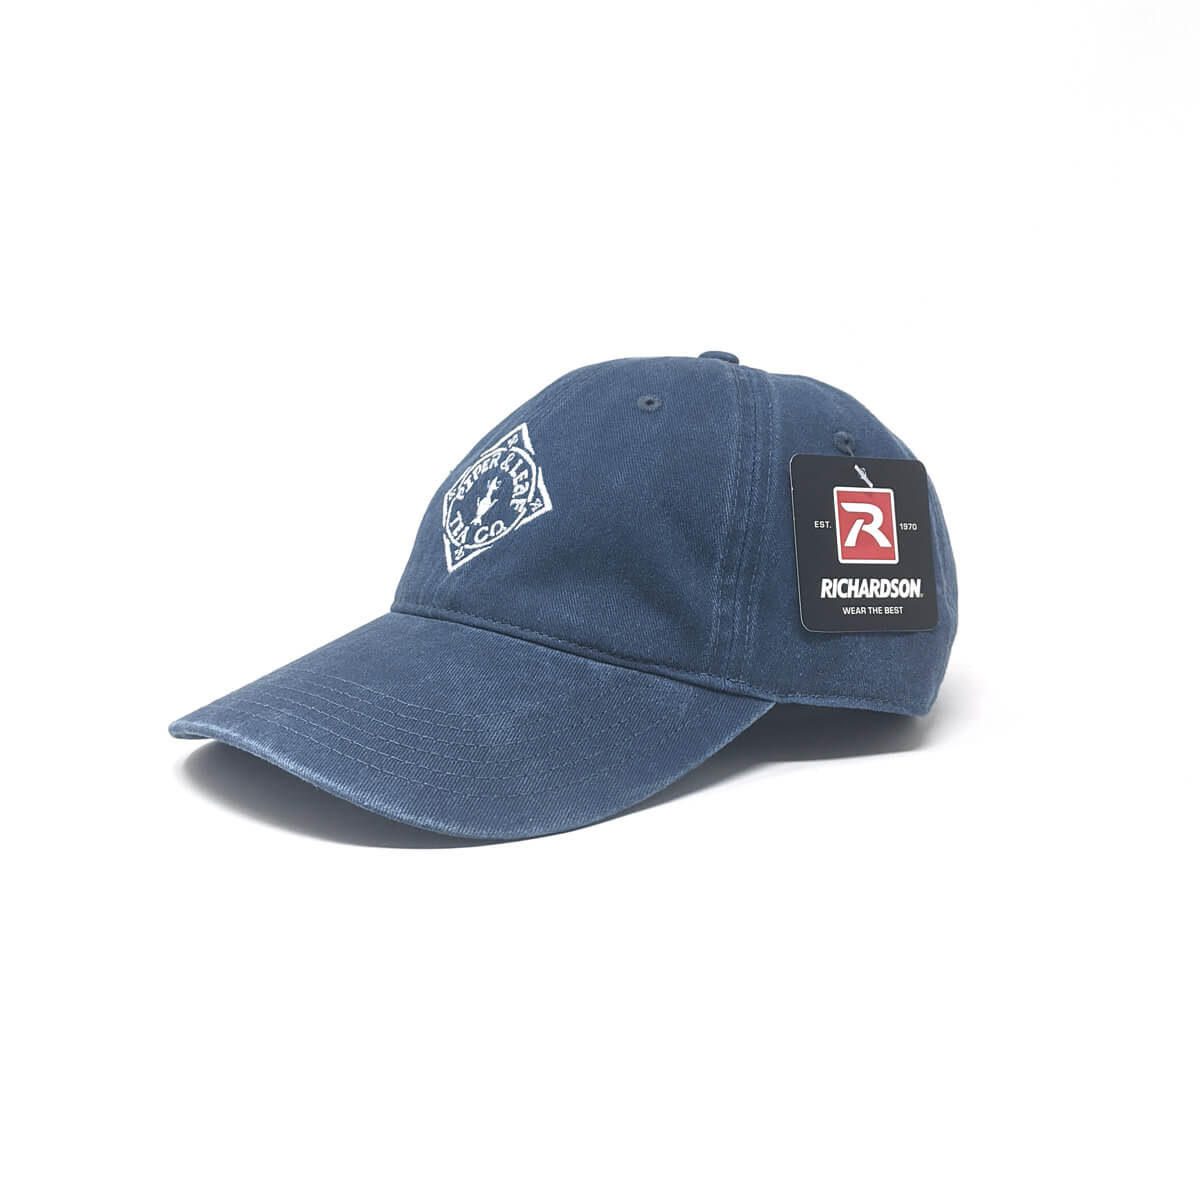 Piper & Leaf diamond logo denim hat - Classic Blue